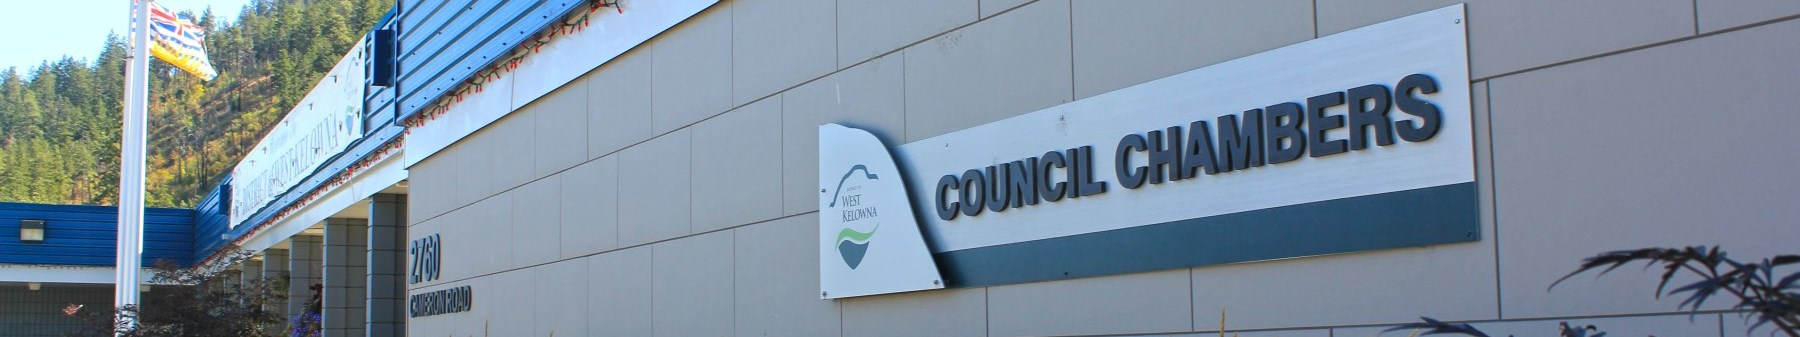 Council Chambers Sign CWK Image